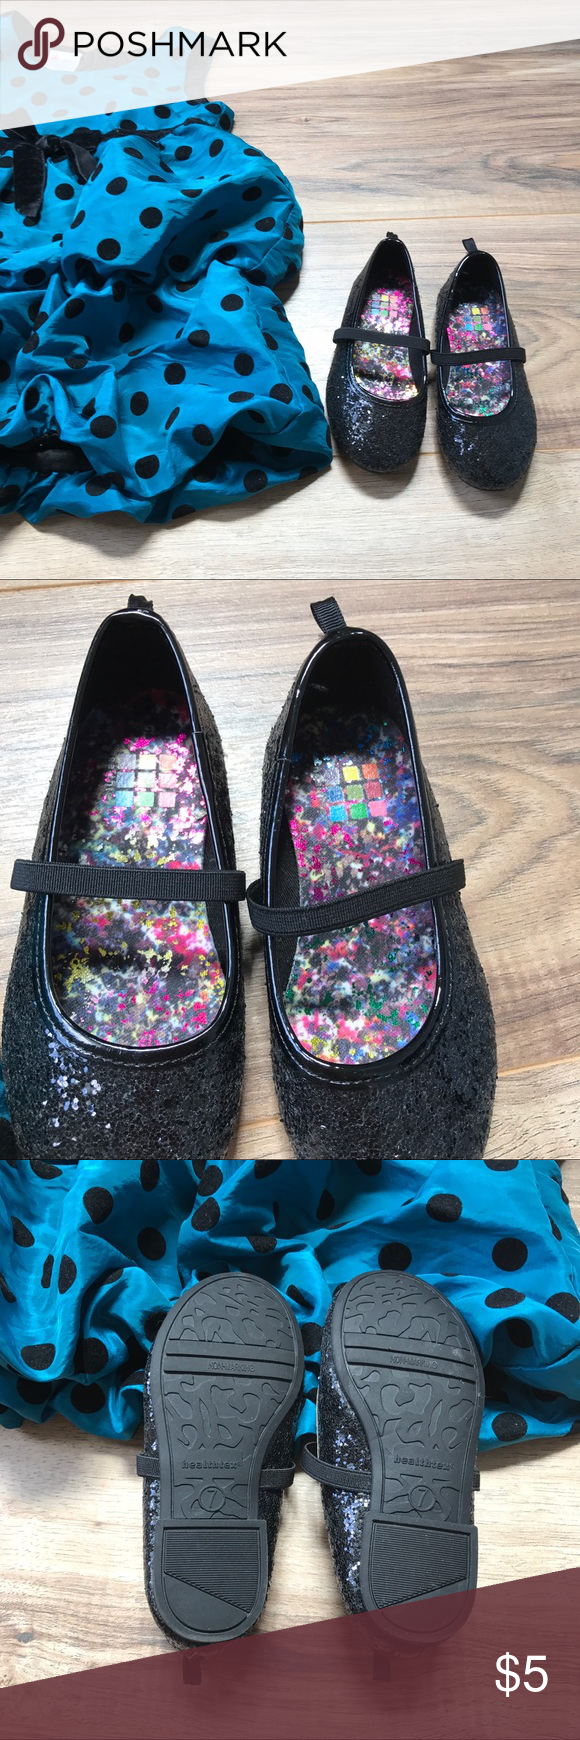 Size 7 little girl black sparkle shoes. 💗 Worn one time, EUC and super cute. 💗 Shoes Dress Shoes